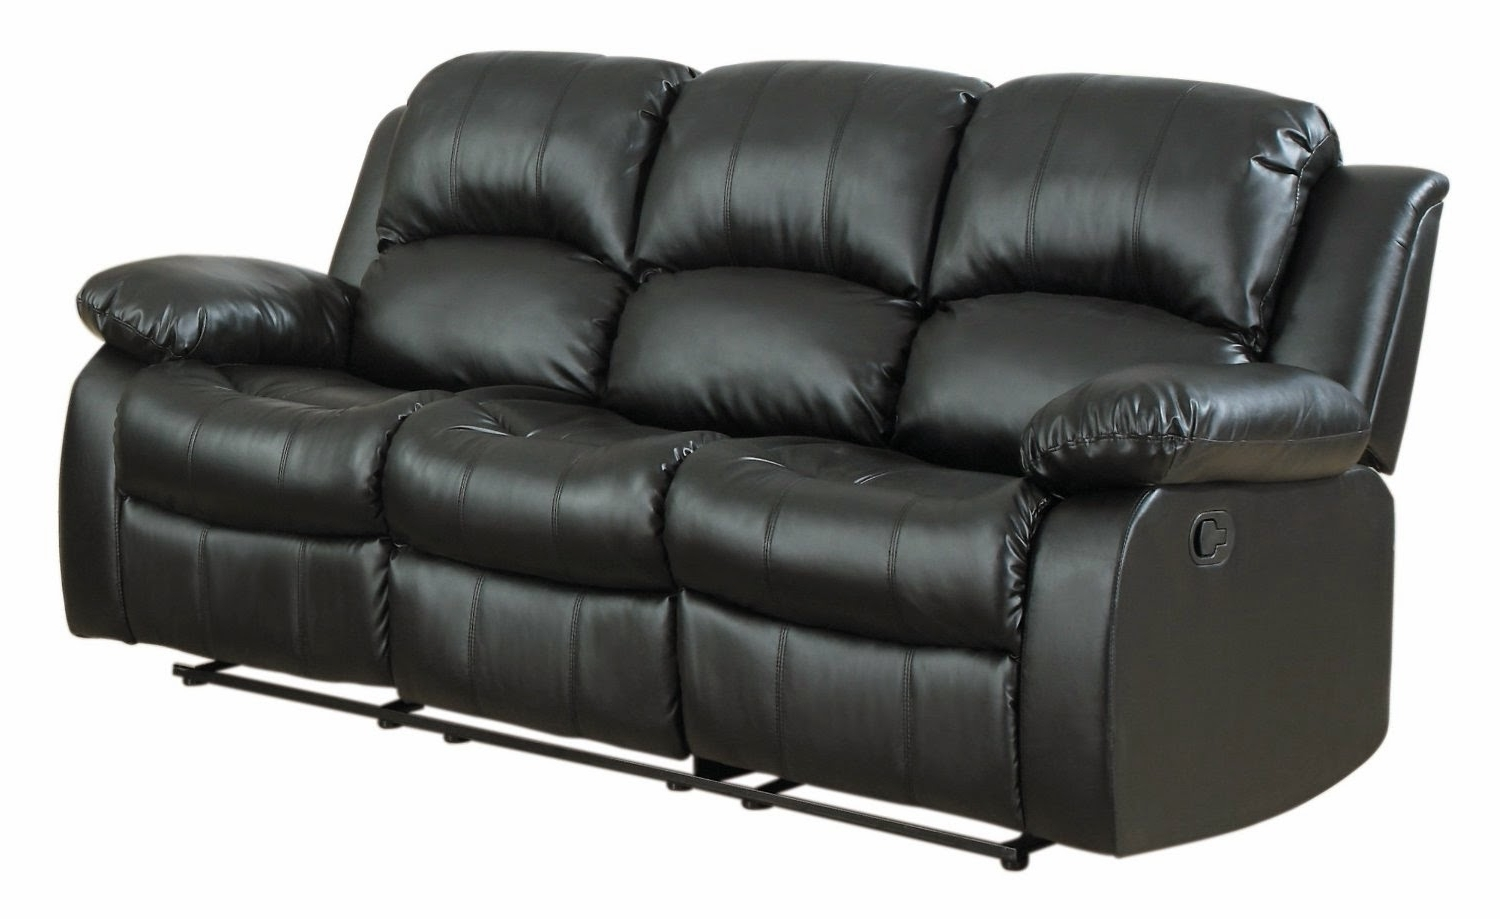 Famous Berkline Sofas Throughout Reclining Sofas For Sale: Berkline Leather Reclining Sofa Costco (Gallery 4 of 20)